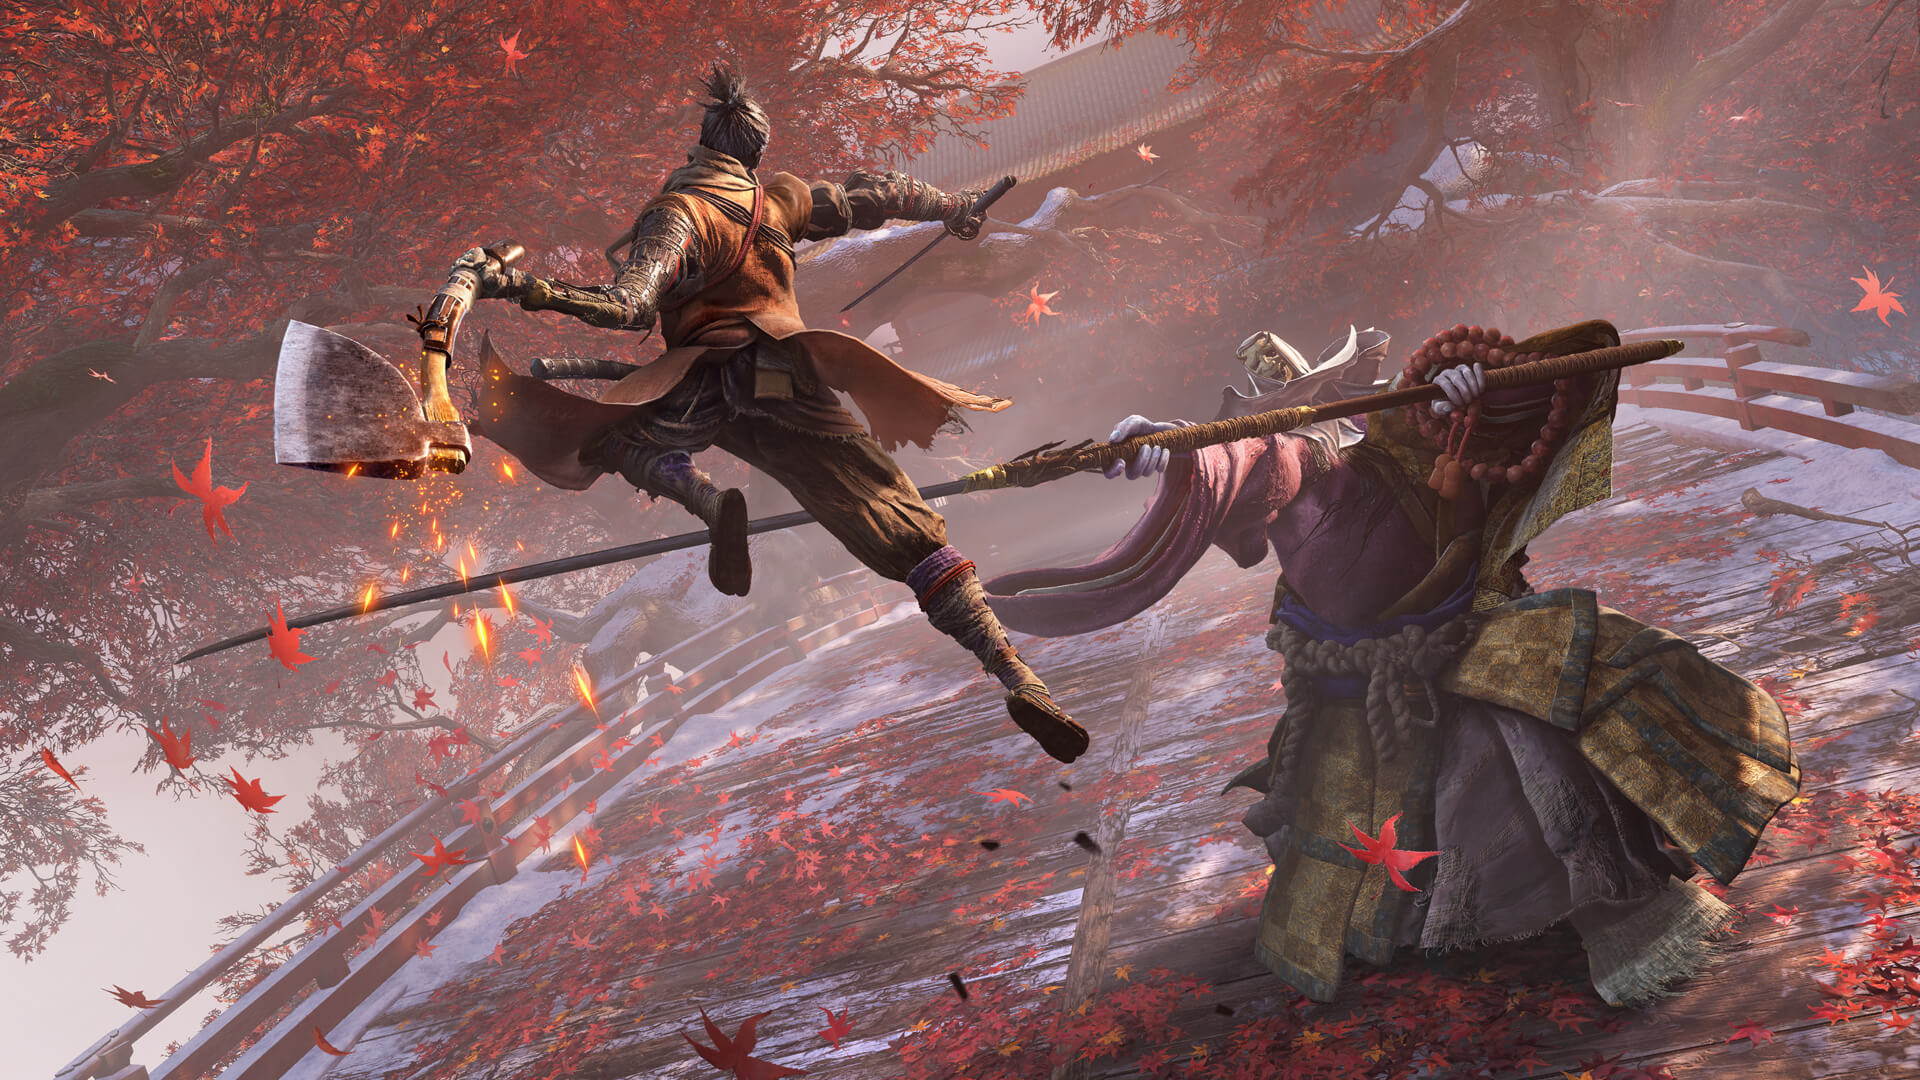 Sekiro: Shadows Die Twice Cursed Monk